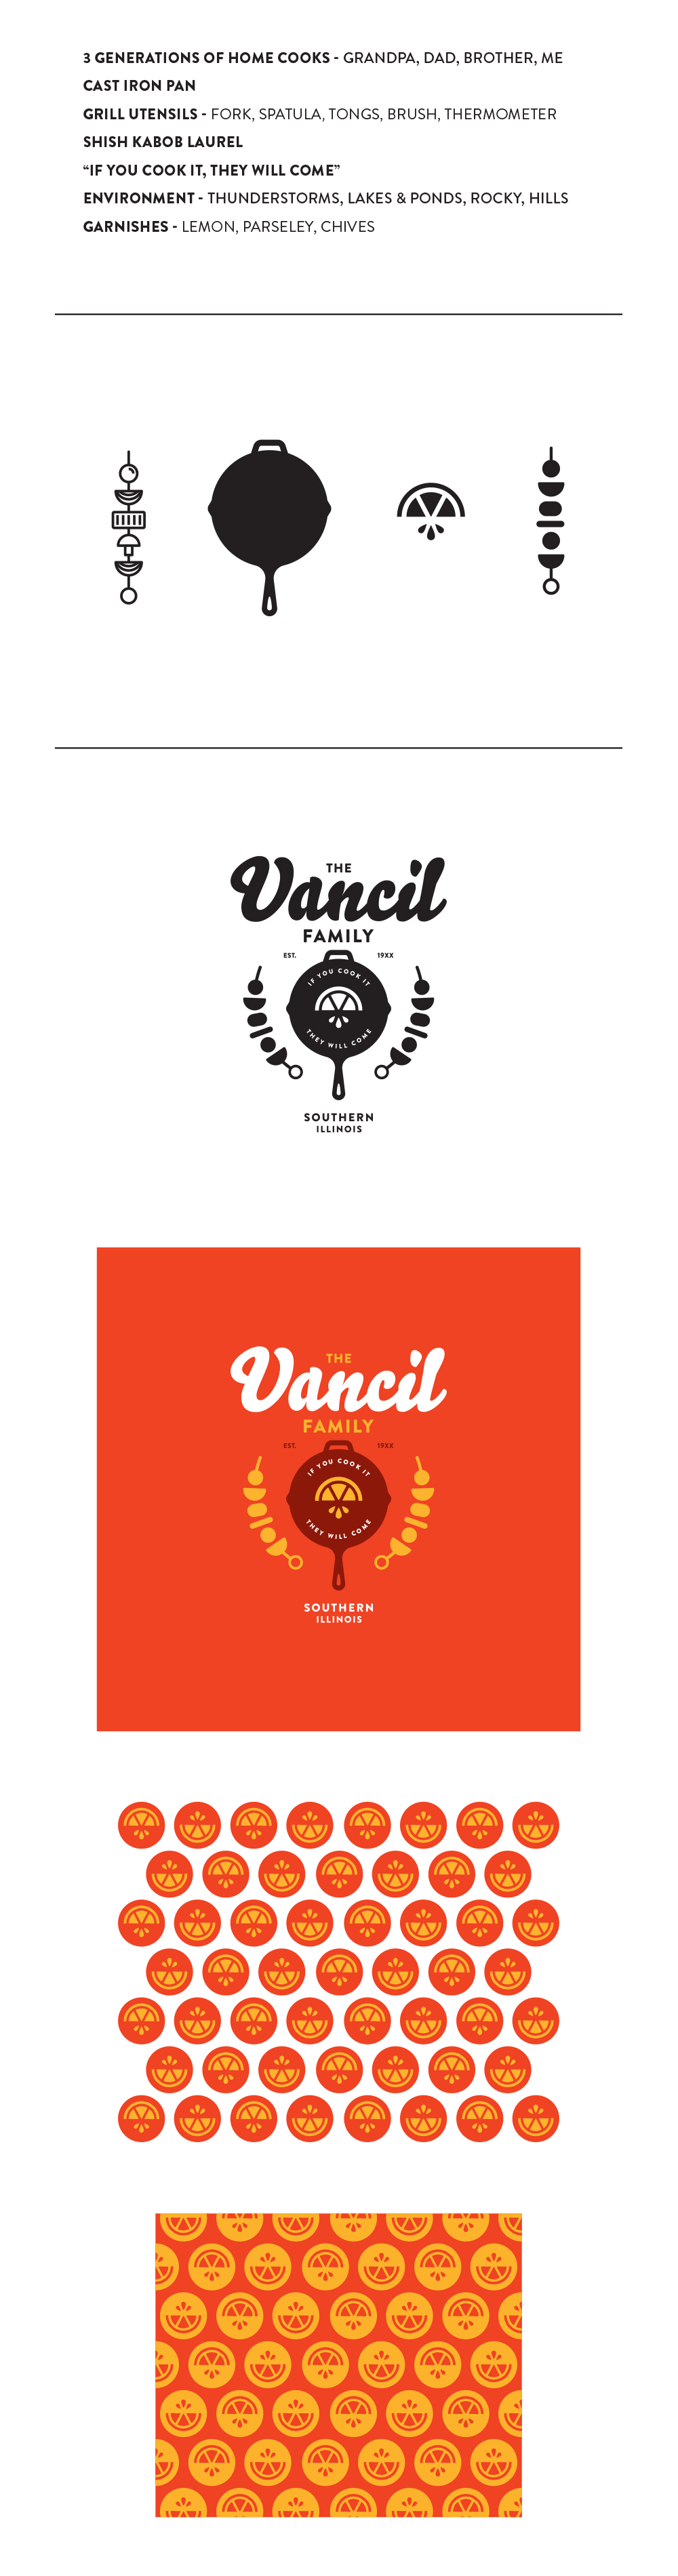 Vancil Family Crest - image 1 - student project